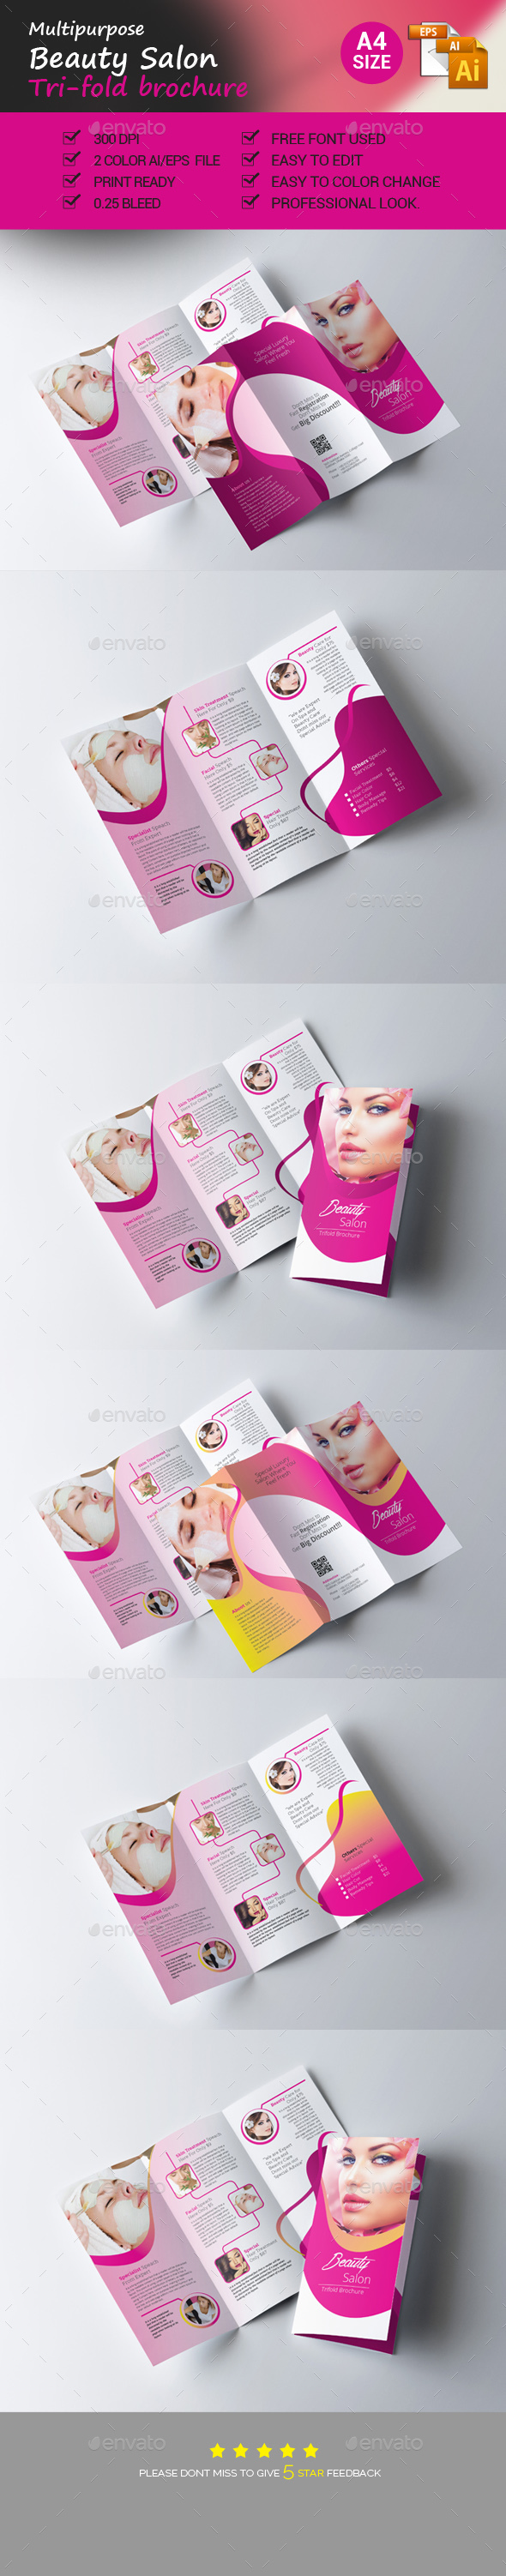 Beauty Salon Trifold Brochure - Brochures Print Templates